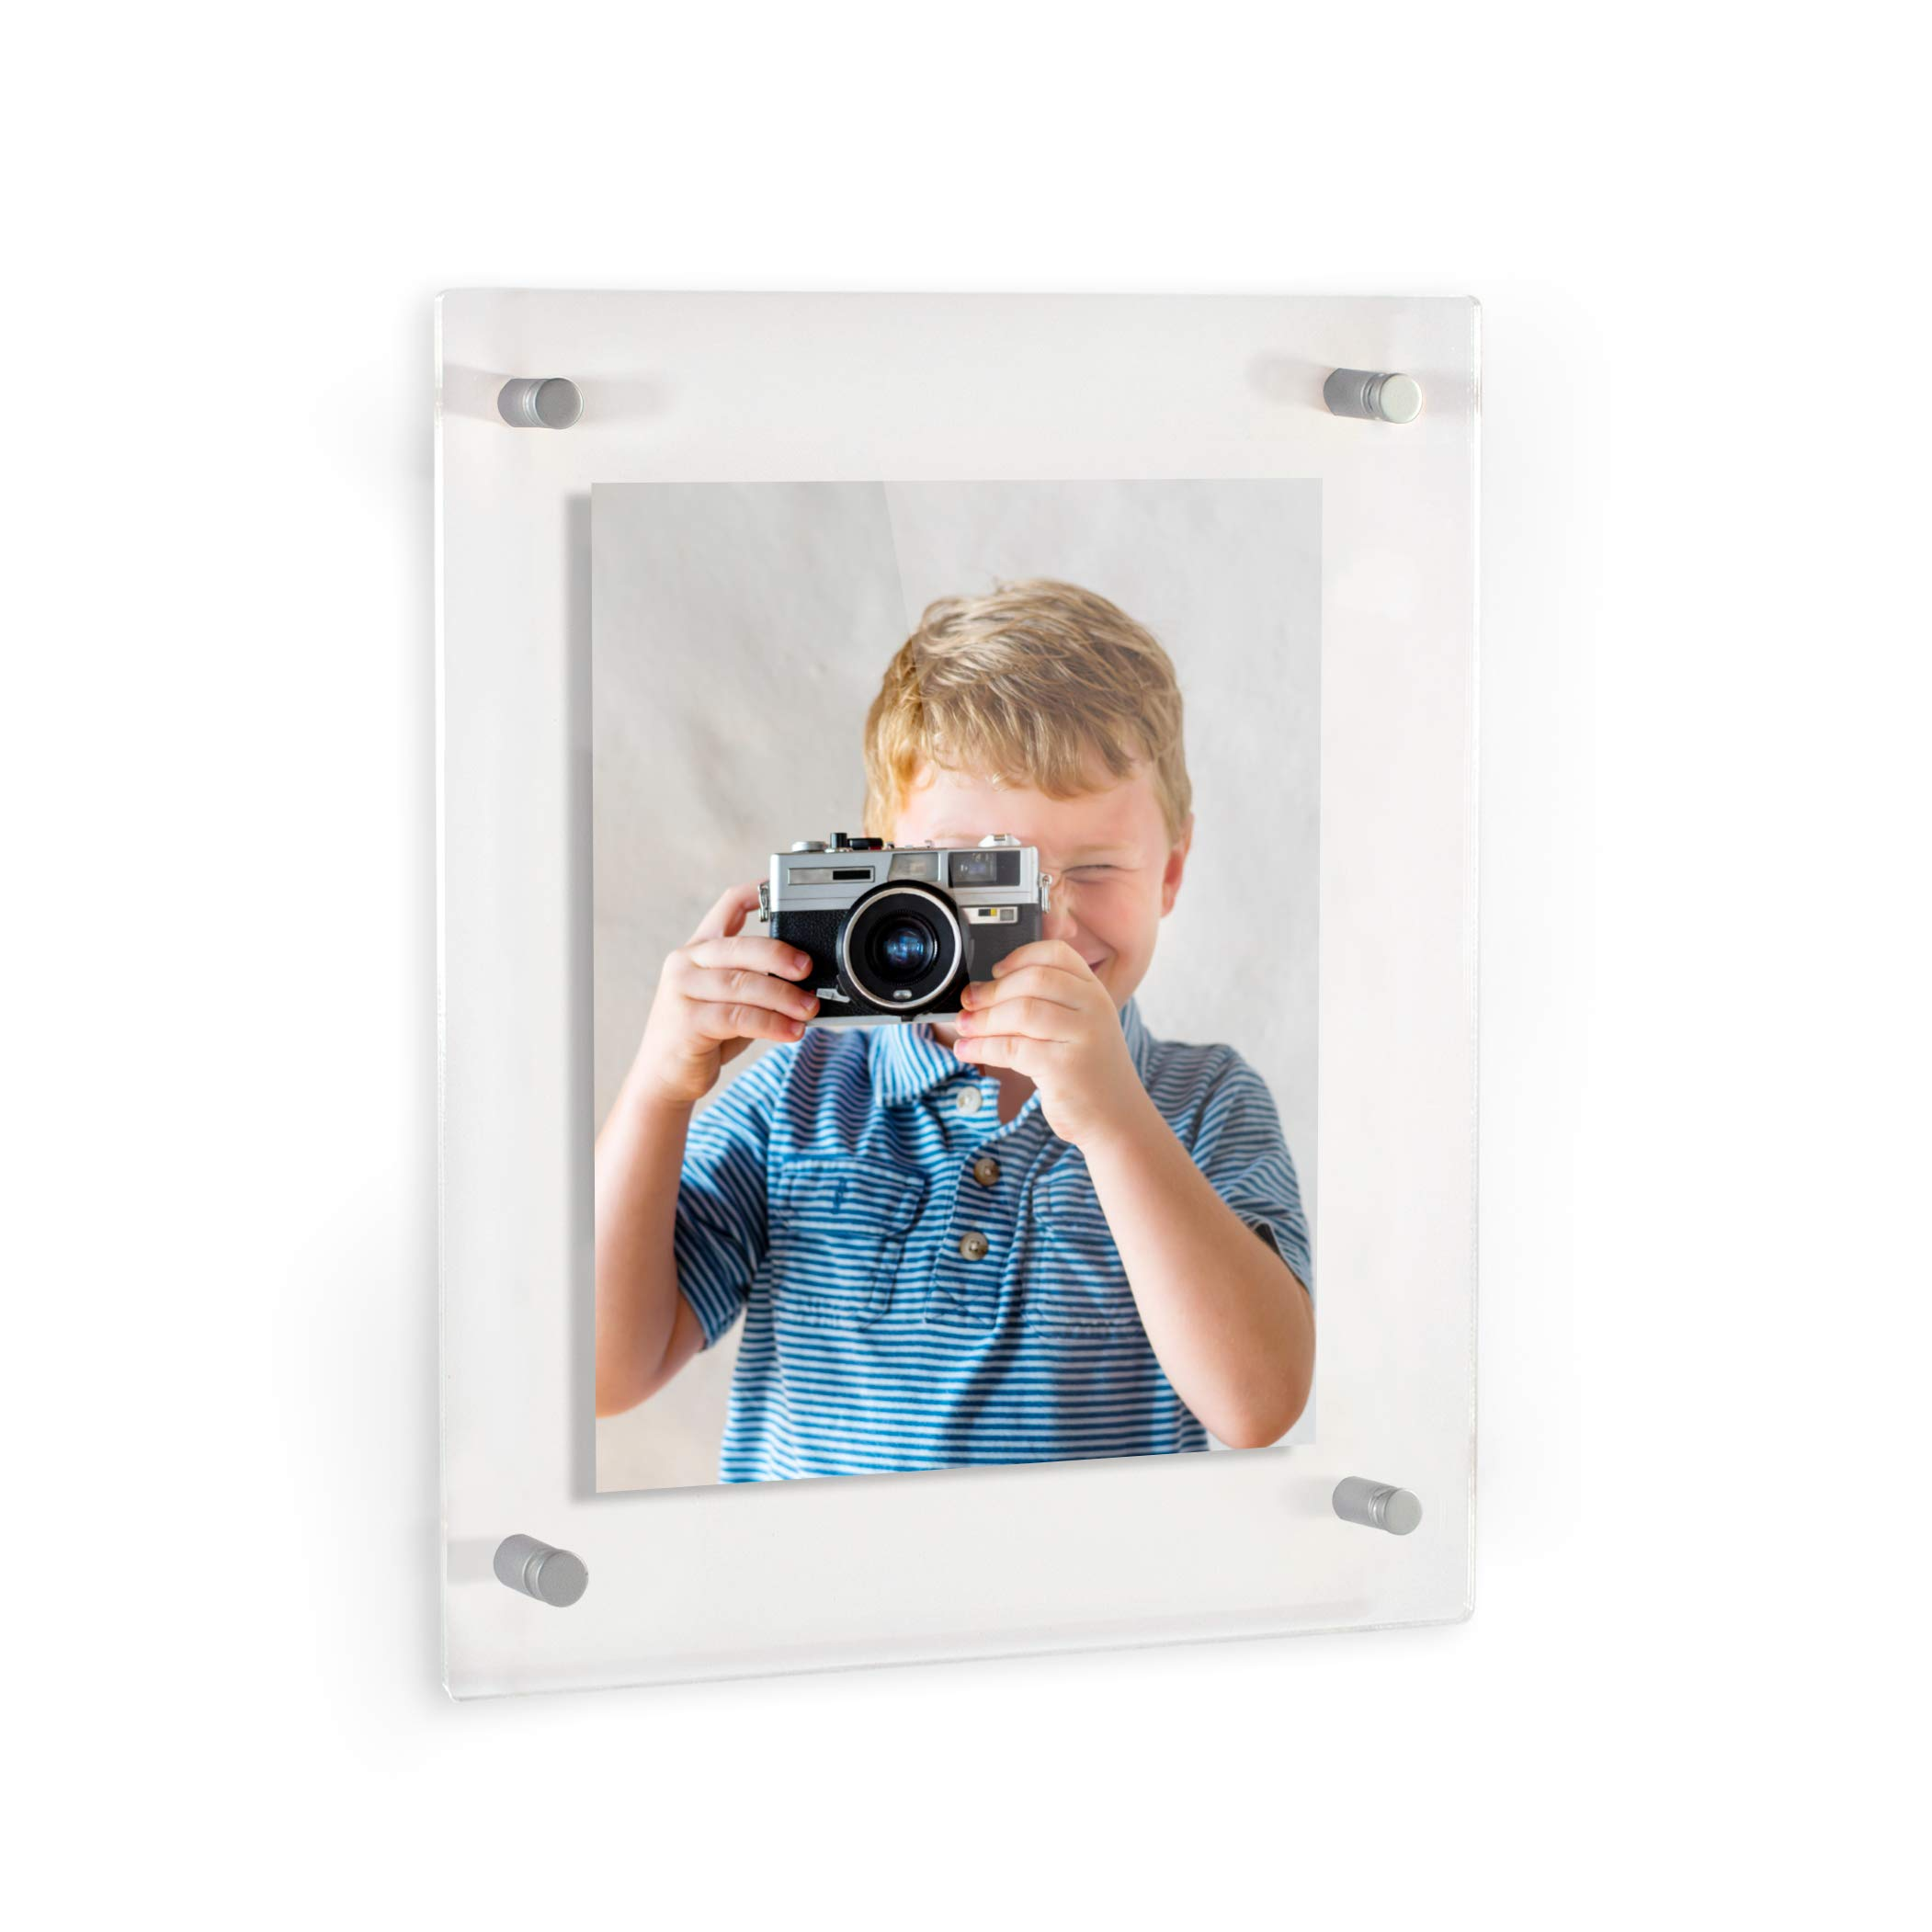 ArtToFrames Floating Acrylic Frame for Pictures Up to 16x20 inches (Full Frame is 20x24) with Muted Chrome Standoff Wall Mount Hardware, Acrylic-109-16x20-70